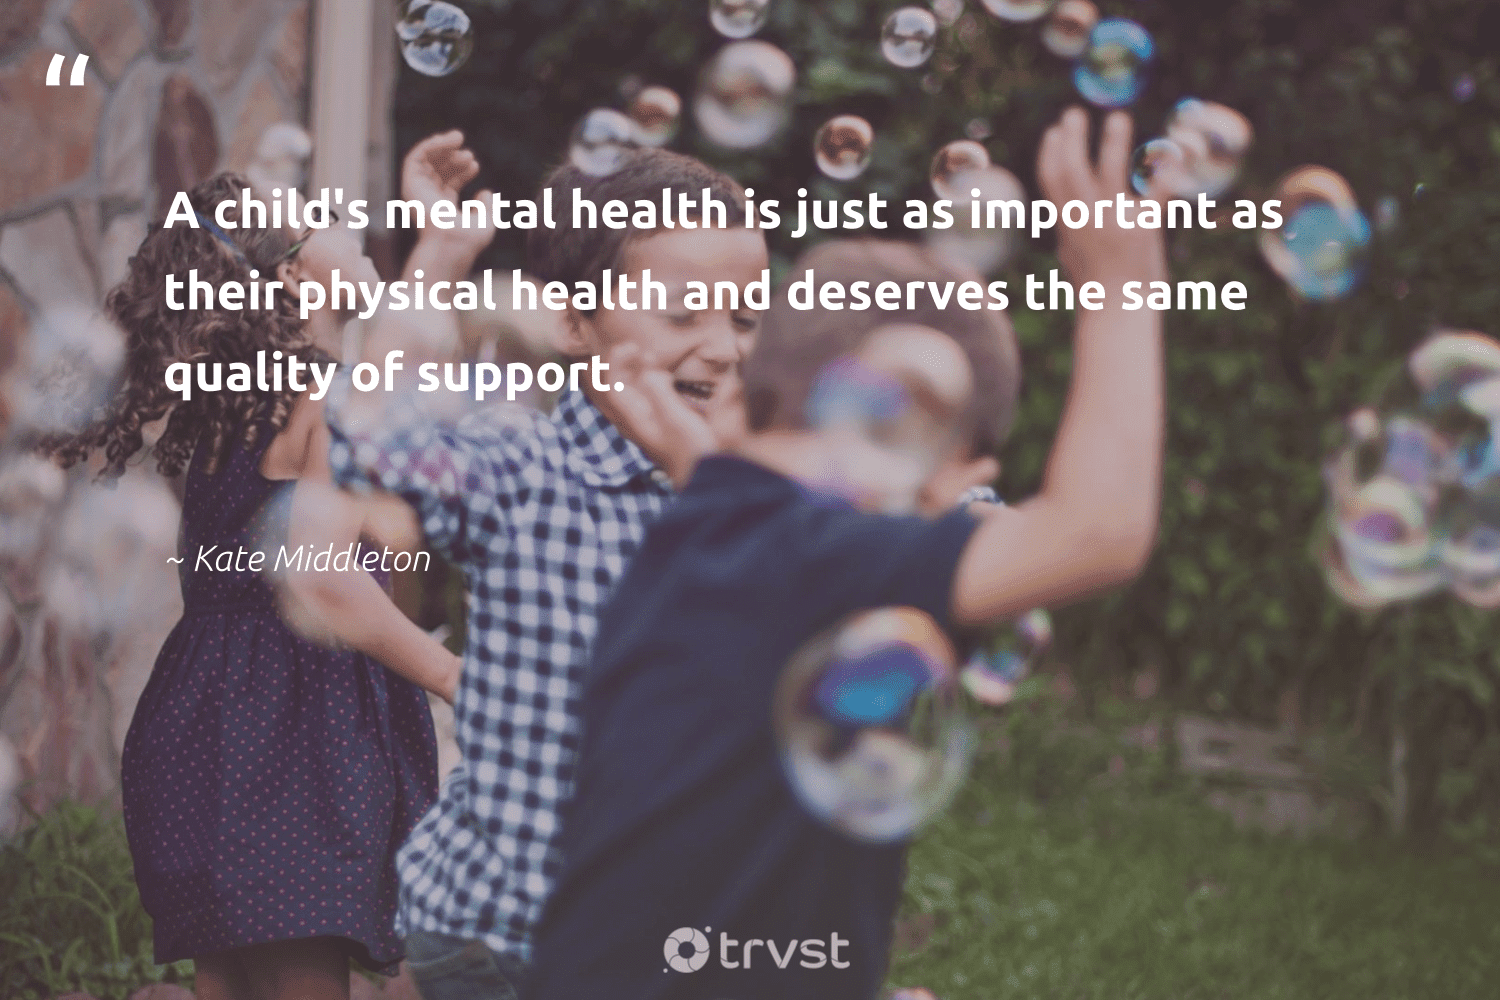 """""""A child's mental health is just as important as their physical health and deserves the same quality of support.""""  - Kate Middleton #trvst #quotes #mentalhealth #health #anxiety #nevergiveup #begreat #impact #mentalhealthmatters #togetherwecan #changemakers #socialimpact"""